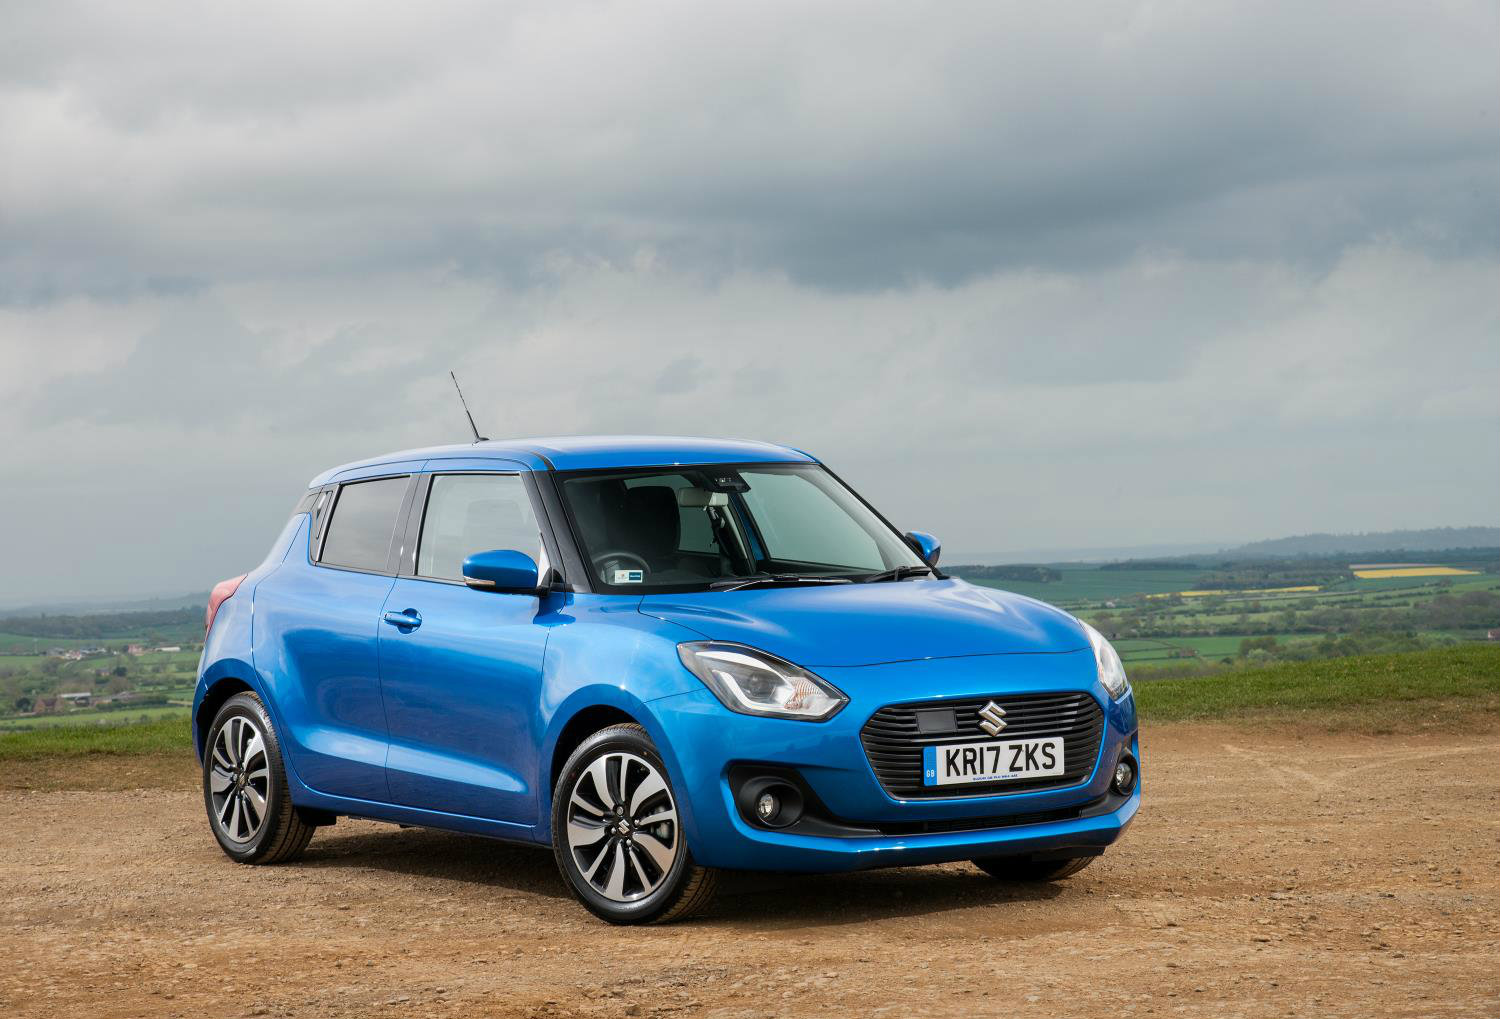 New Suzuki Swift on sale in June